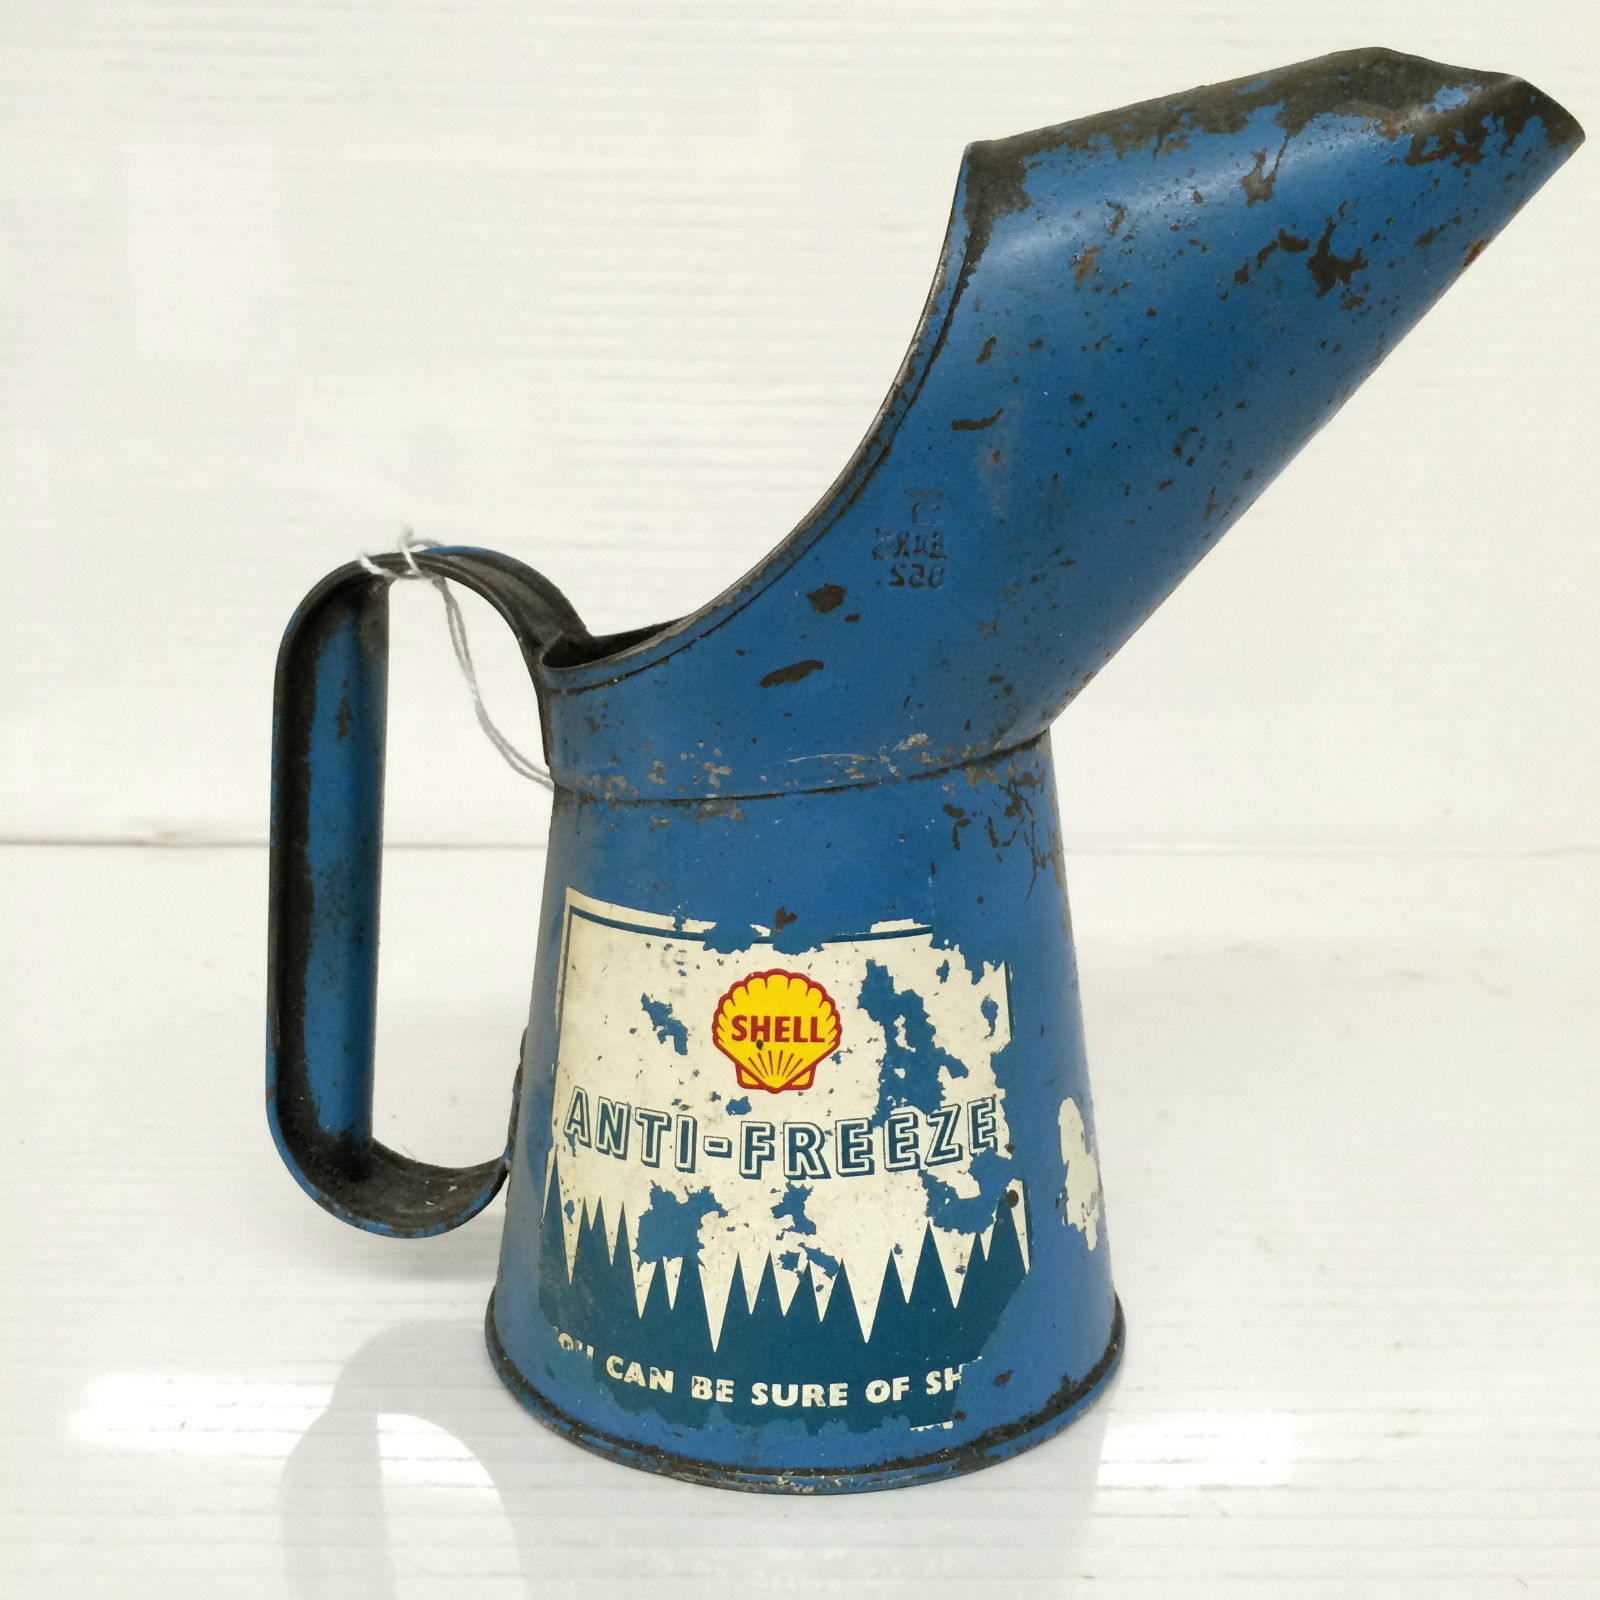 Vintage Shell Anti-Freeze Jug Pourer